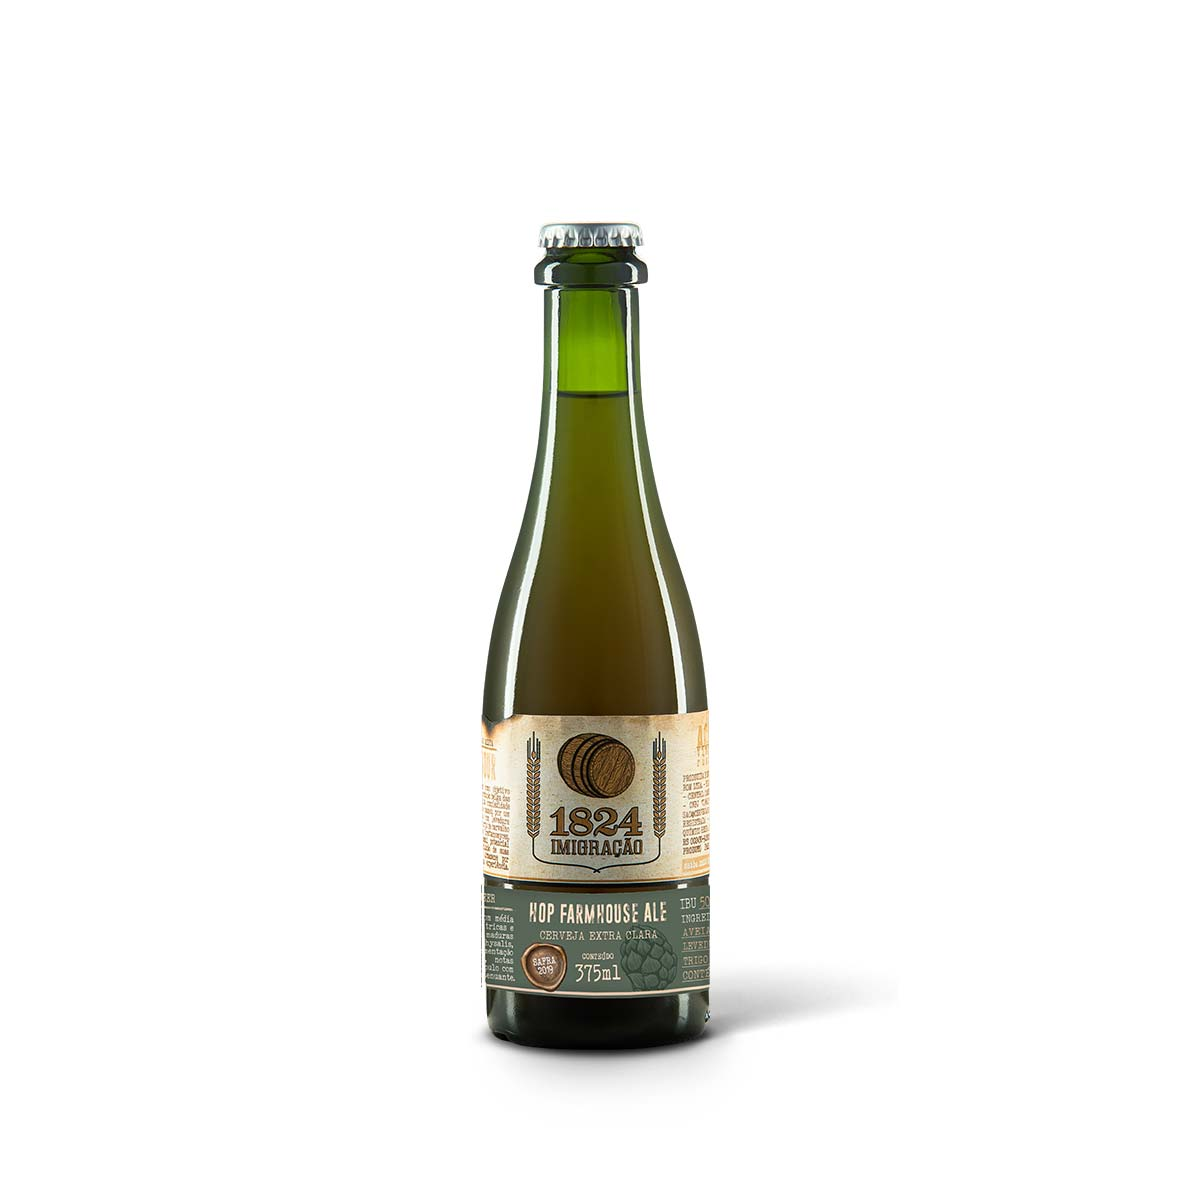 Imigração Sour Farmhouse Ale 375ml